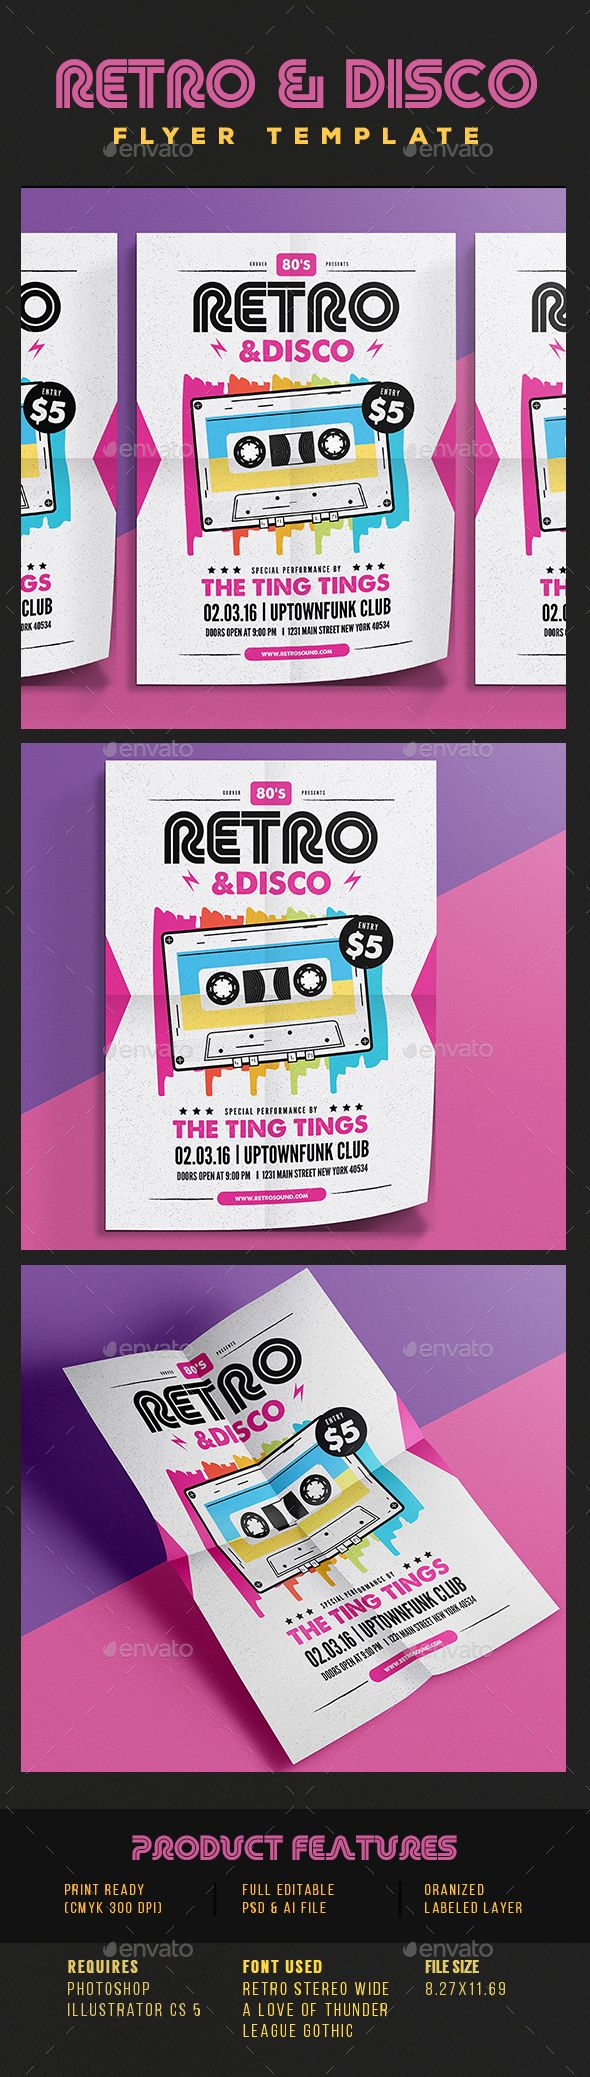 Retro Disco Flyer  Flyer Template Concert Flyer And Template